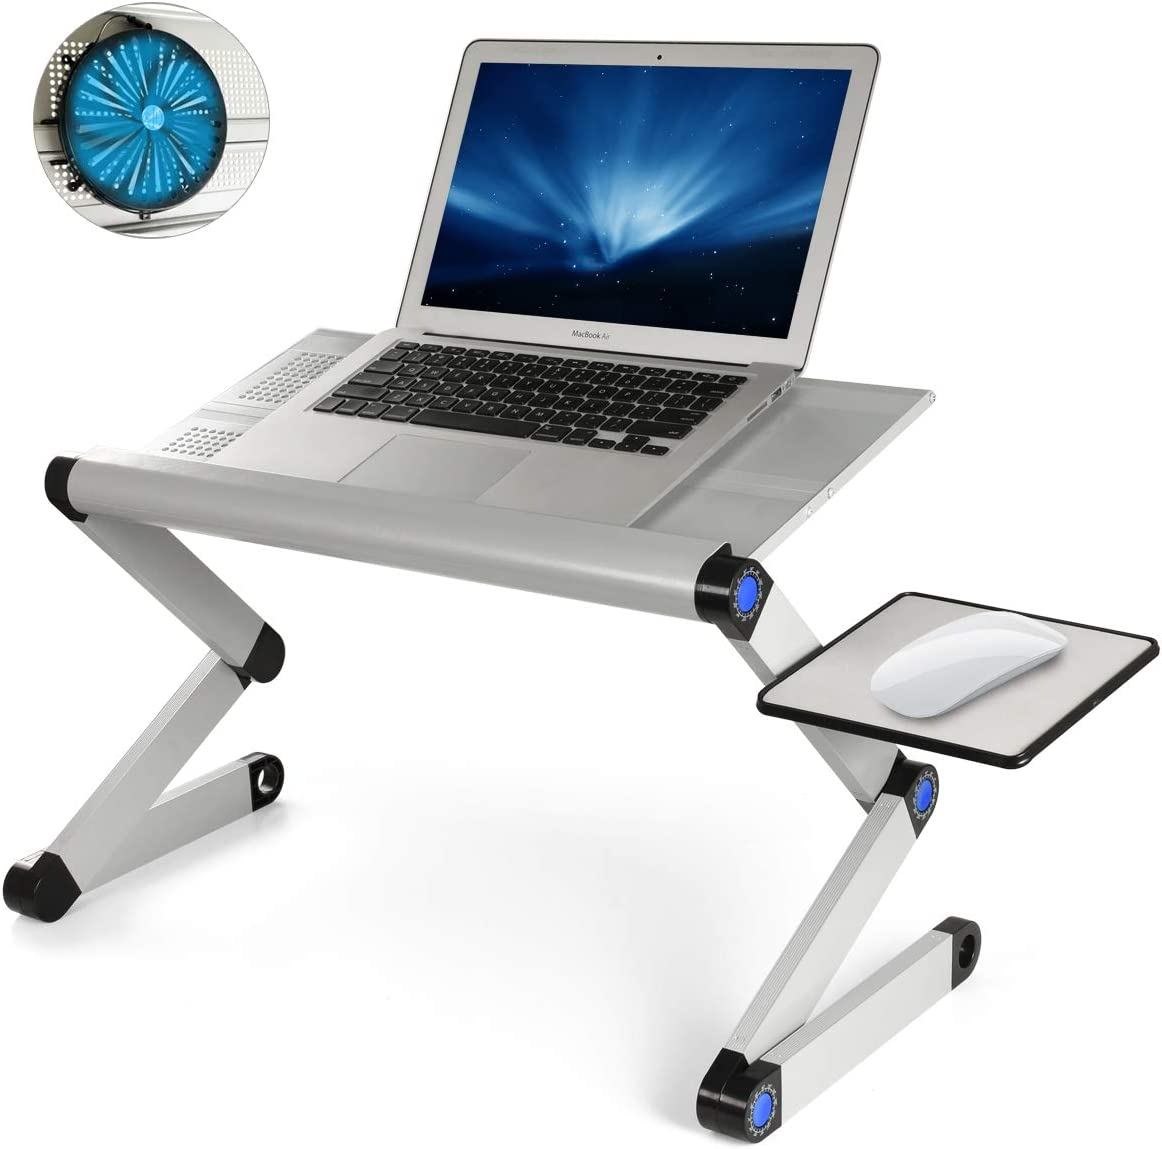 "Ultra-Large Adjustable Laptop Stand, Portable Laptop Table with Big Movable CPU Cooling Fan for 17 Inch Computer, Foldable Ergonomic Tray Holder for Bed, Sofa, Chair, Floor (Tray Size: 19"", Silver)"